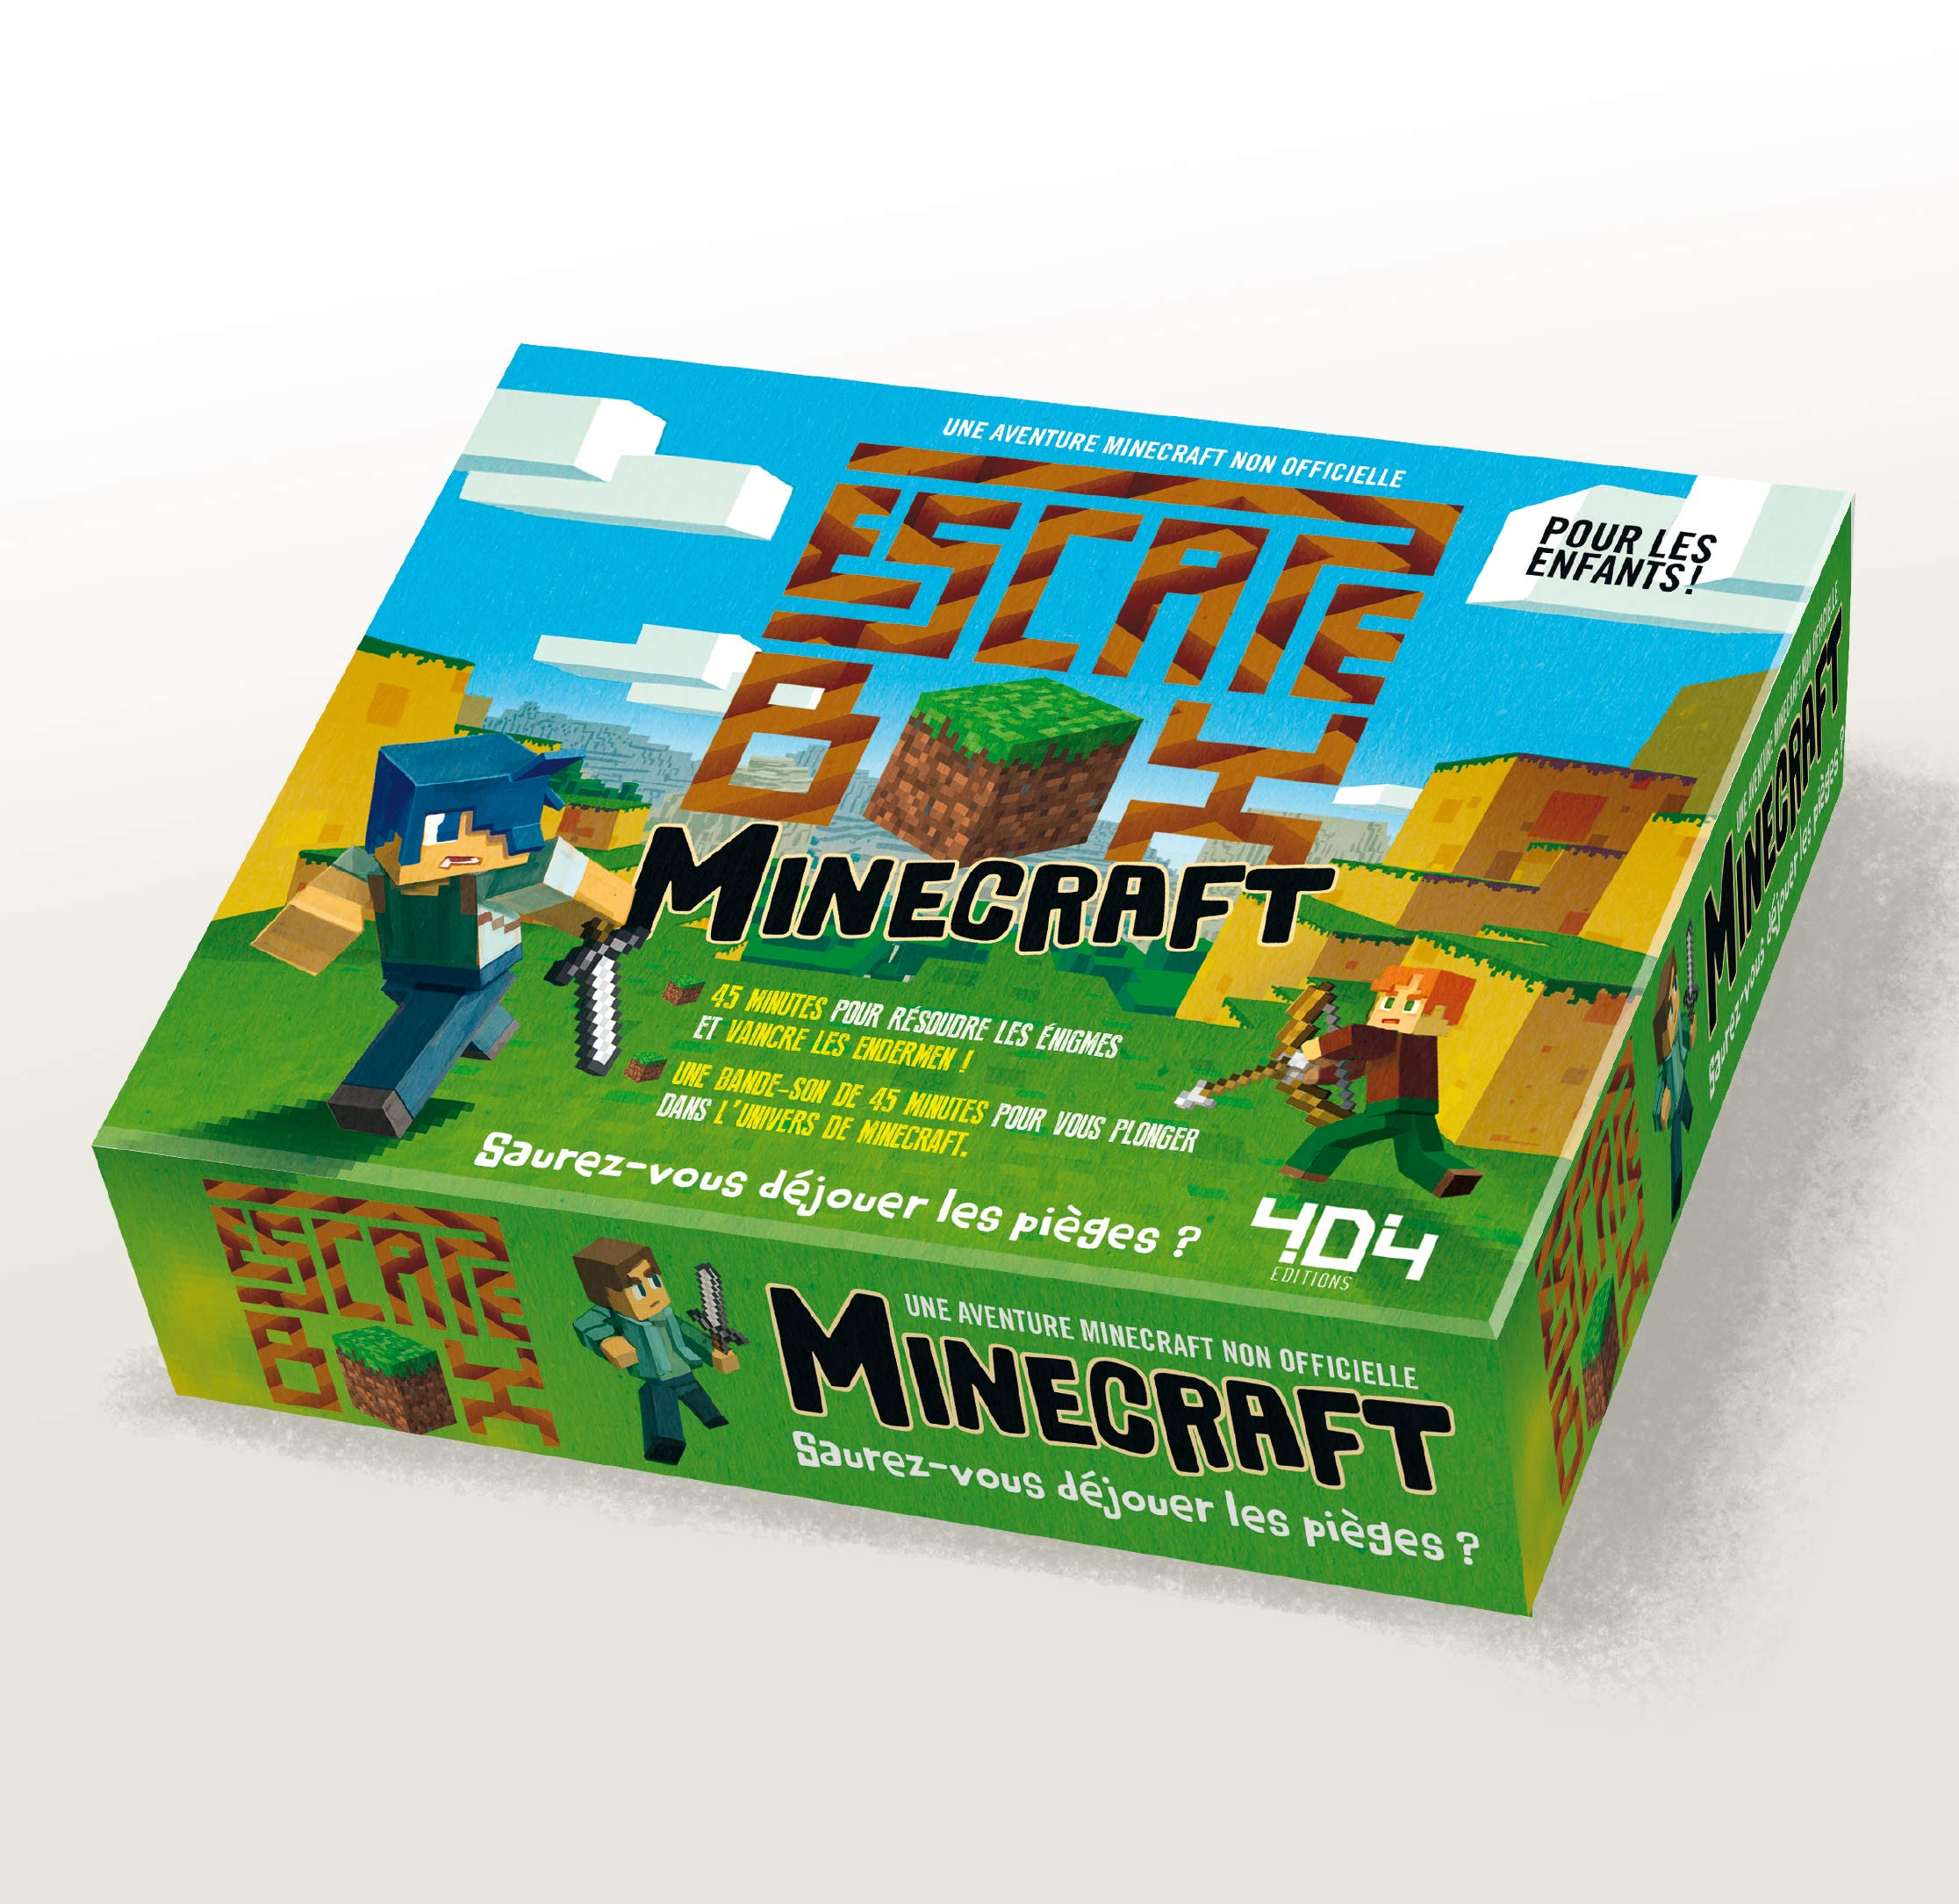 Minecraft (Escape Box): Amazon.es: Stéphane Anquetil: Libros ...